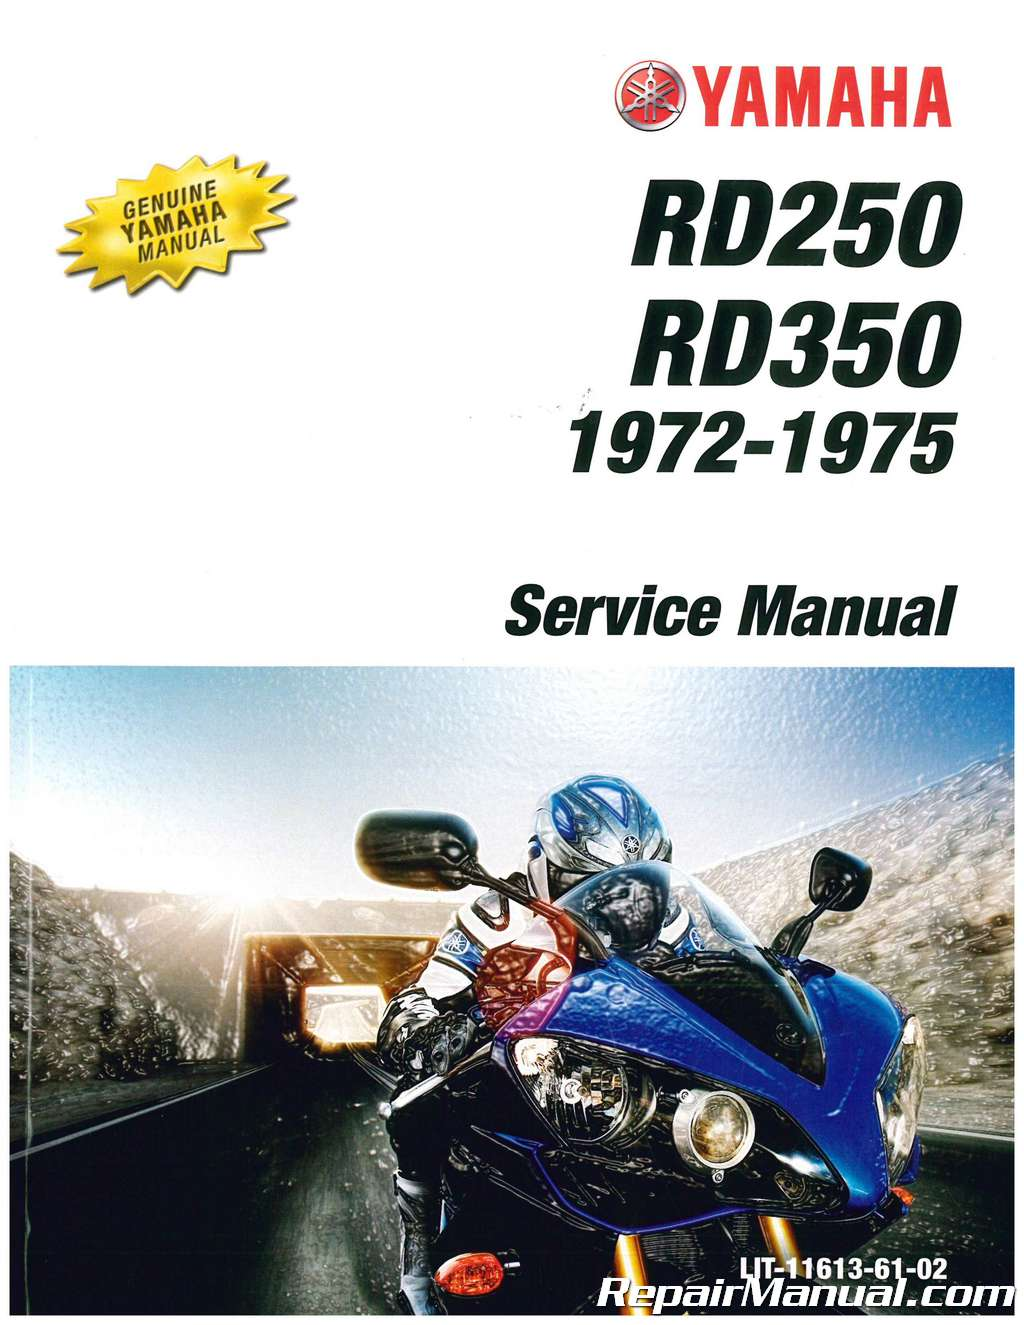 1972-1975-Yamaha-RD250-RD350-Motorcycle-Service-Manual_001.